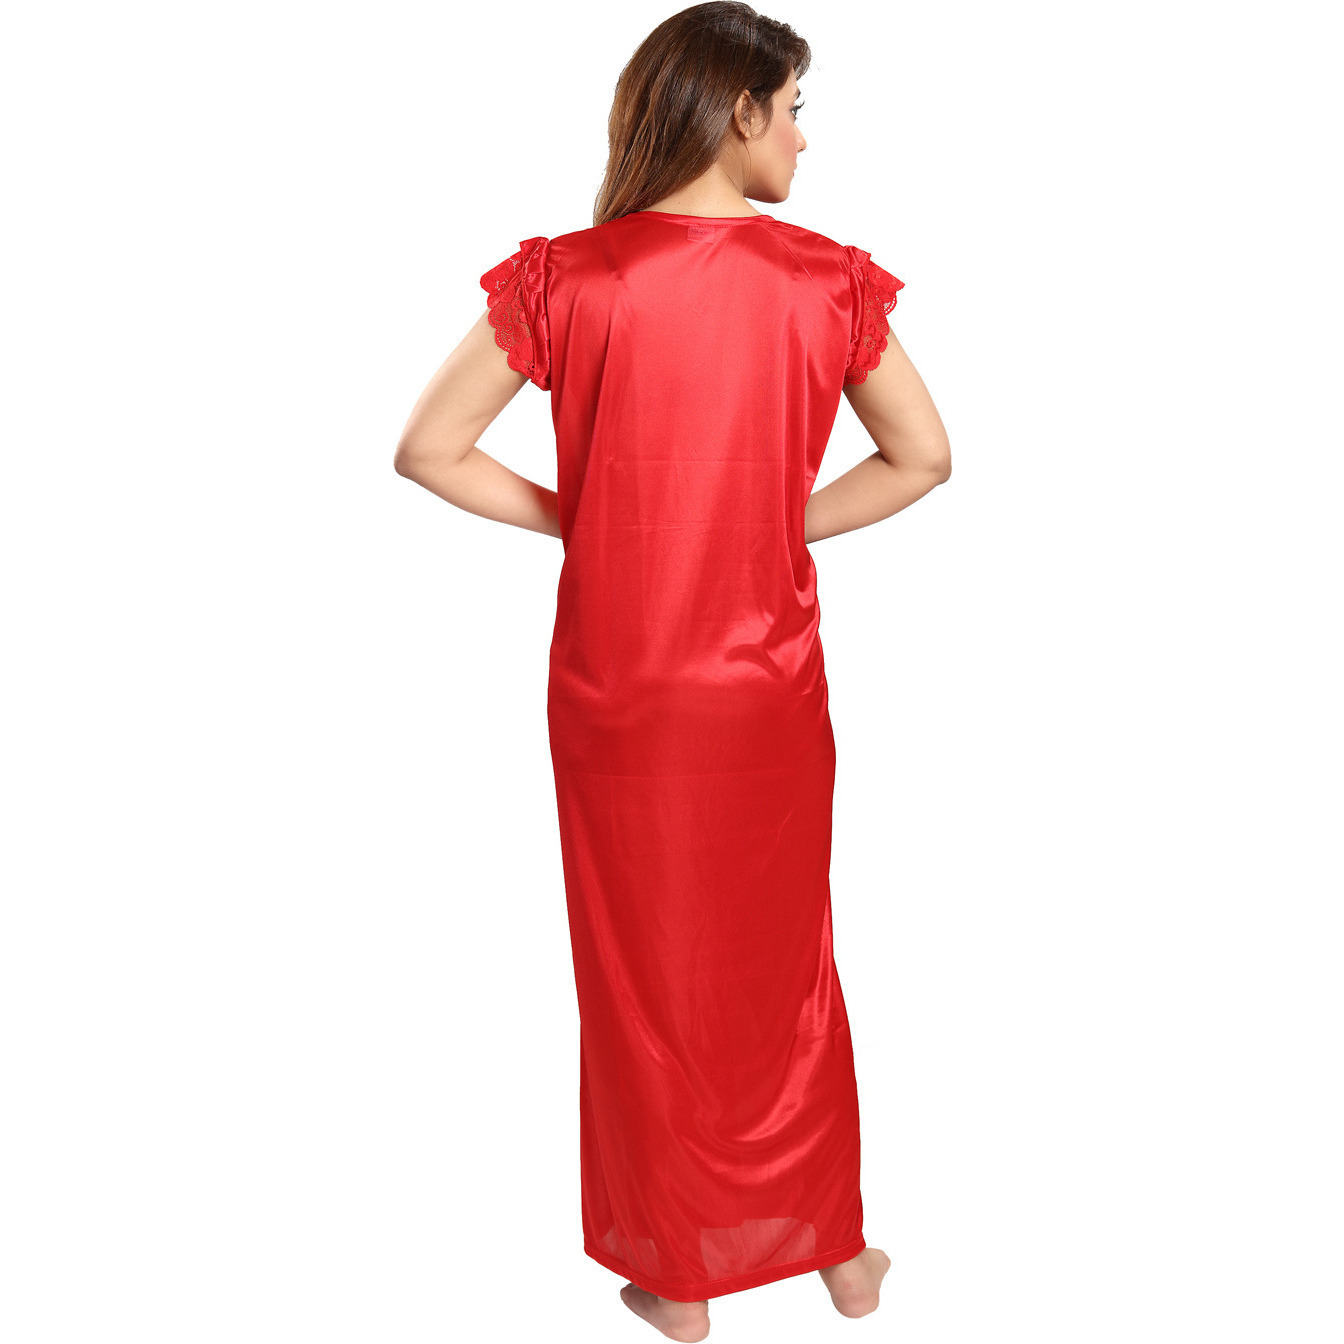 Be You Serena Satin Red-Blue Women Nightgowns Combo Pack of 2